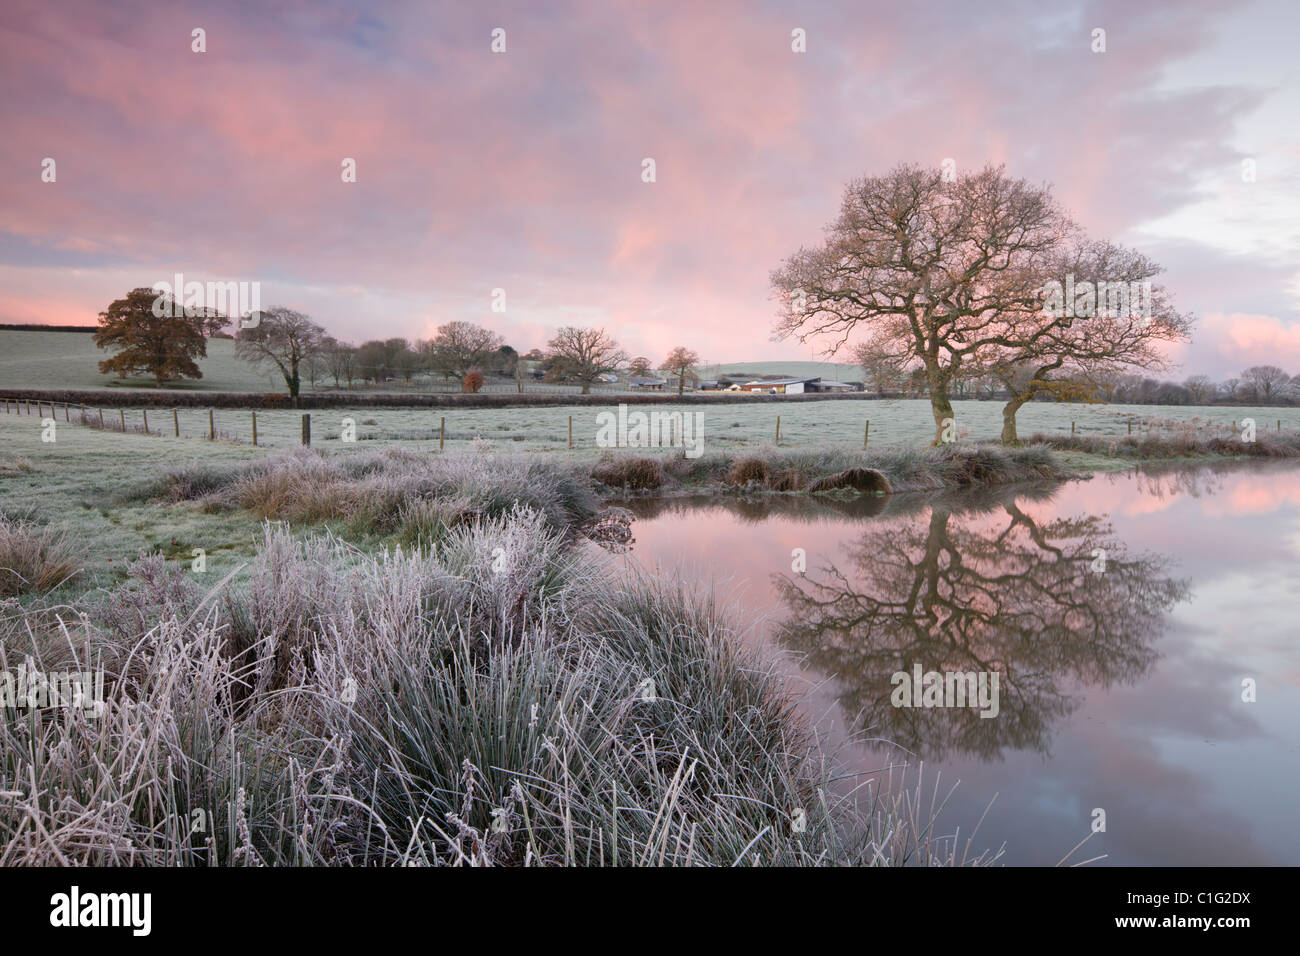 Frosty conditions at dawn beside a pond in the countryside, Morchard Road, Devon, England. Winter (November) 2010. - Stock Image